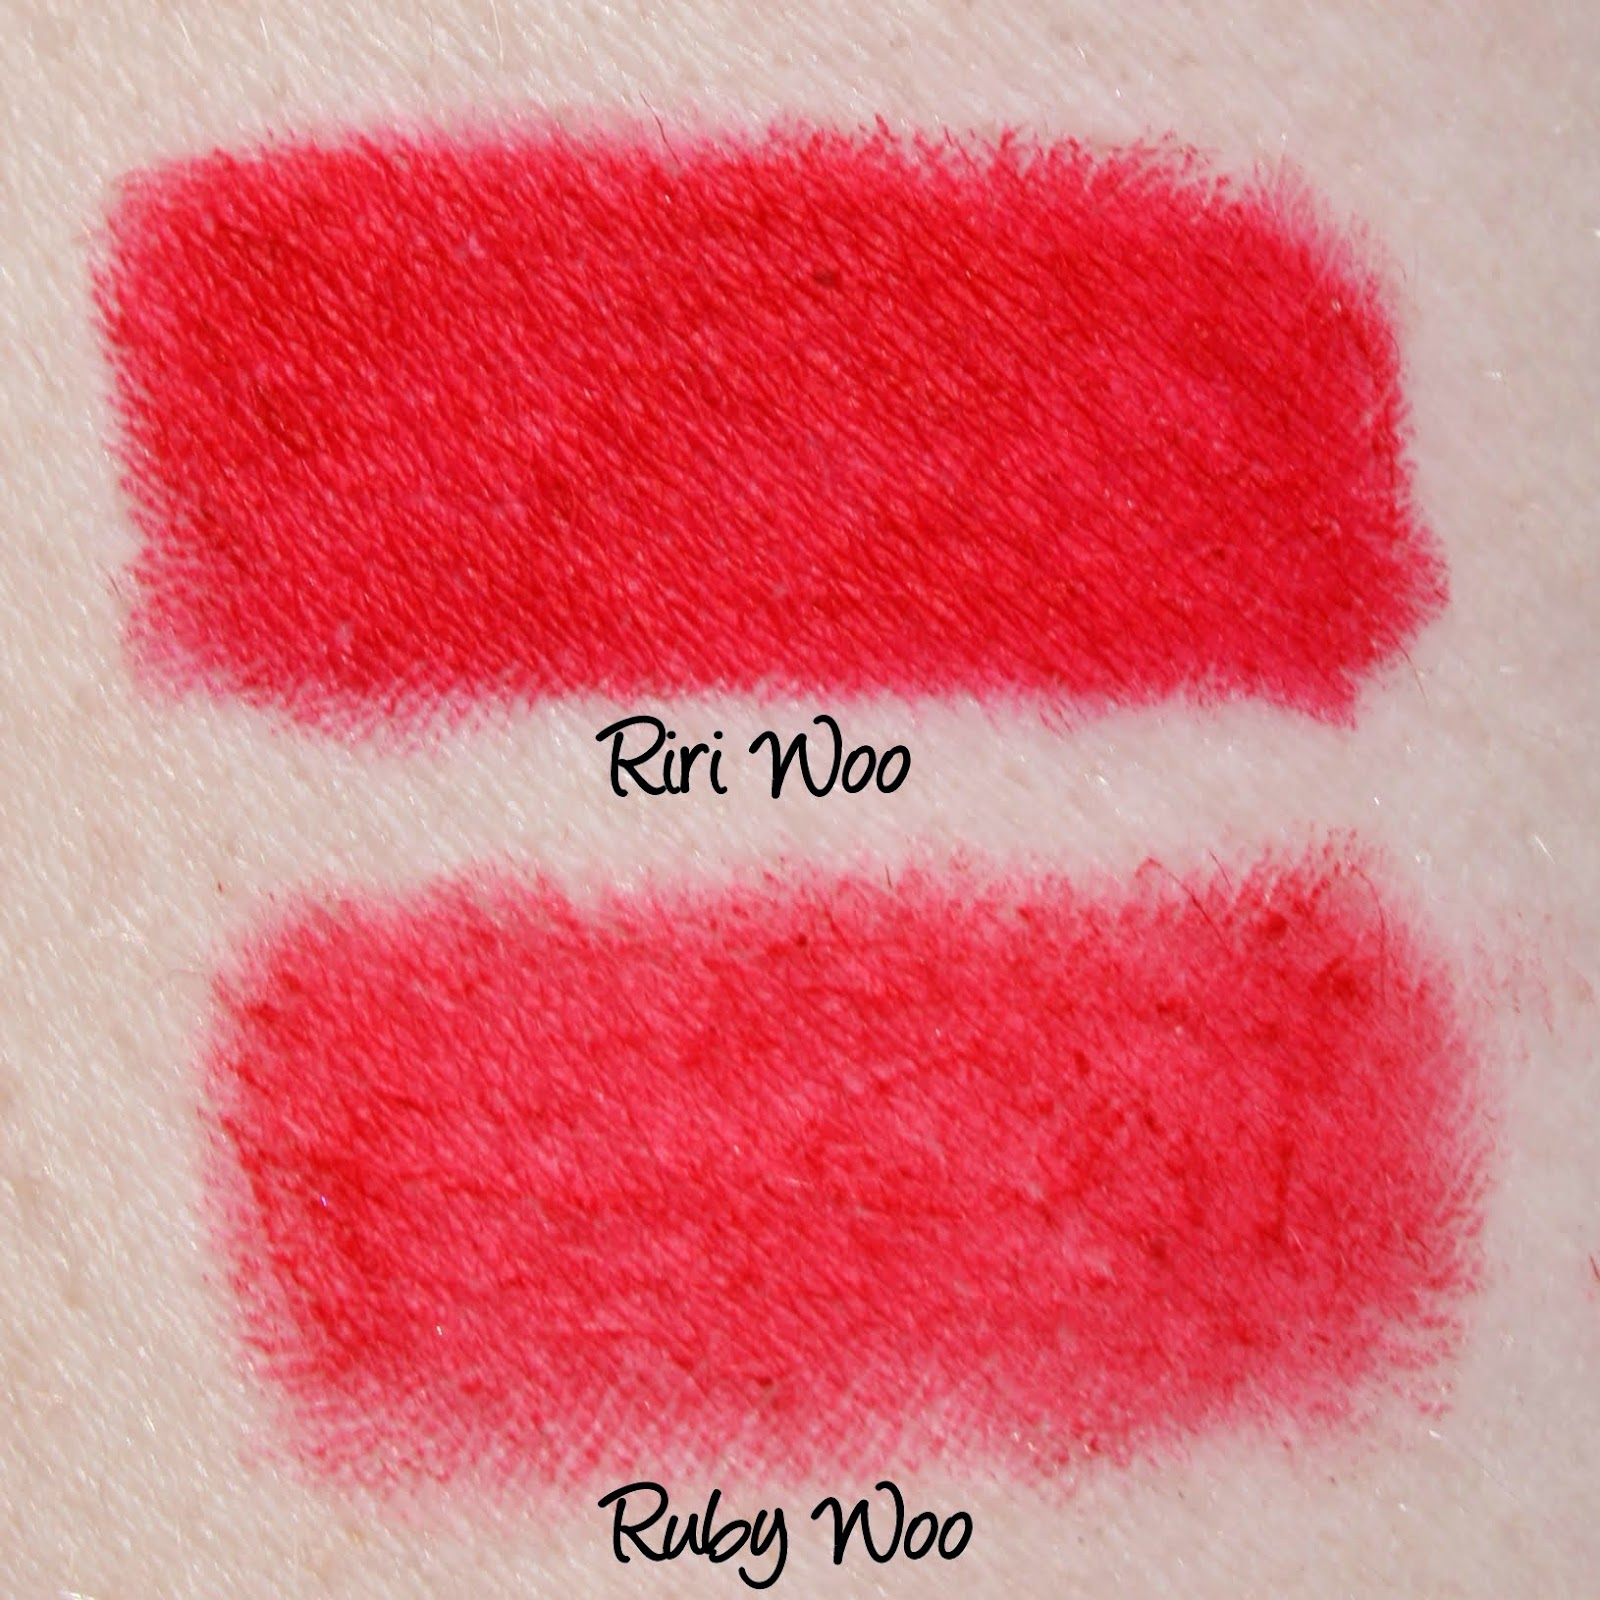 MAC Riri Woo Lipstick - Swatches & Review - Lani Loves